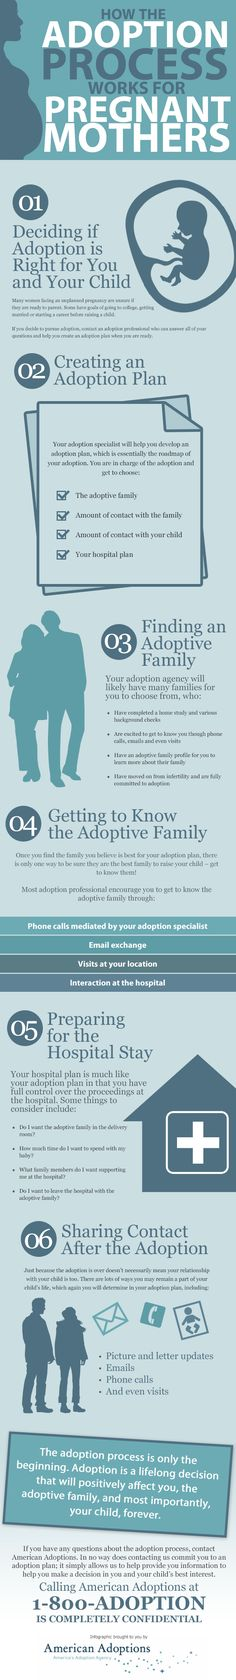 The Adoption Process for Pregnant Women - Visit our site to learn more: http://www.americanadoptions.com/pregnant/adoption_process